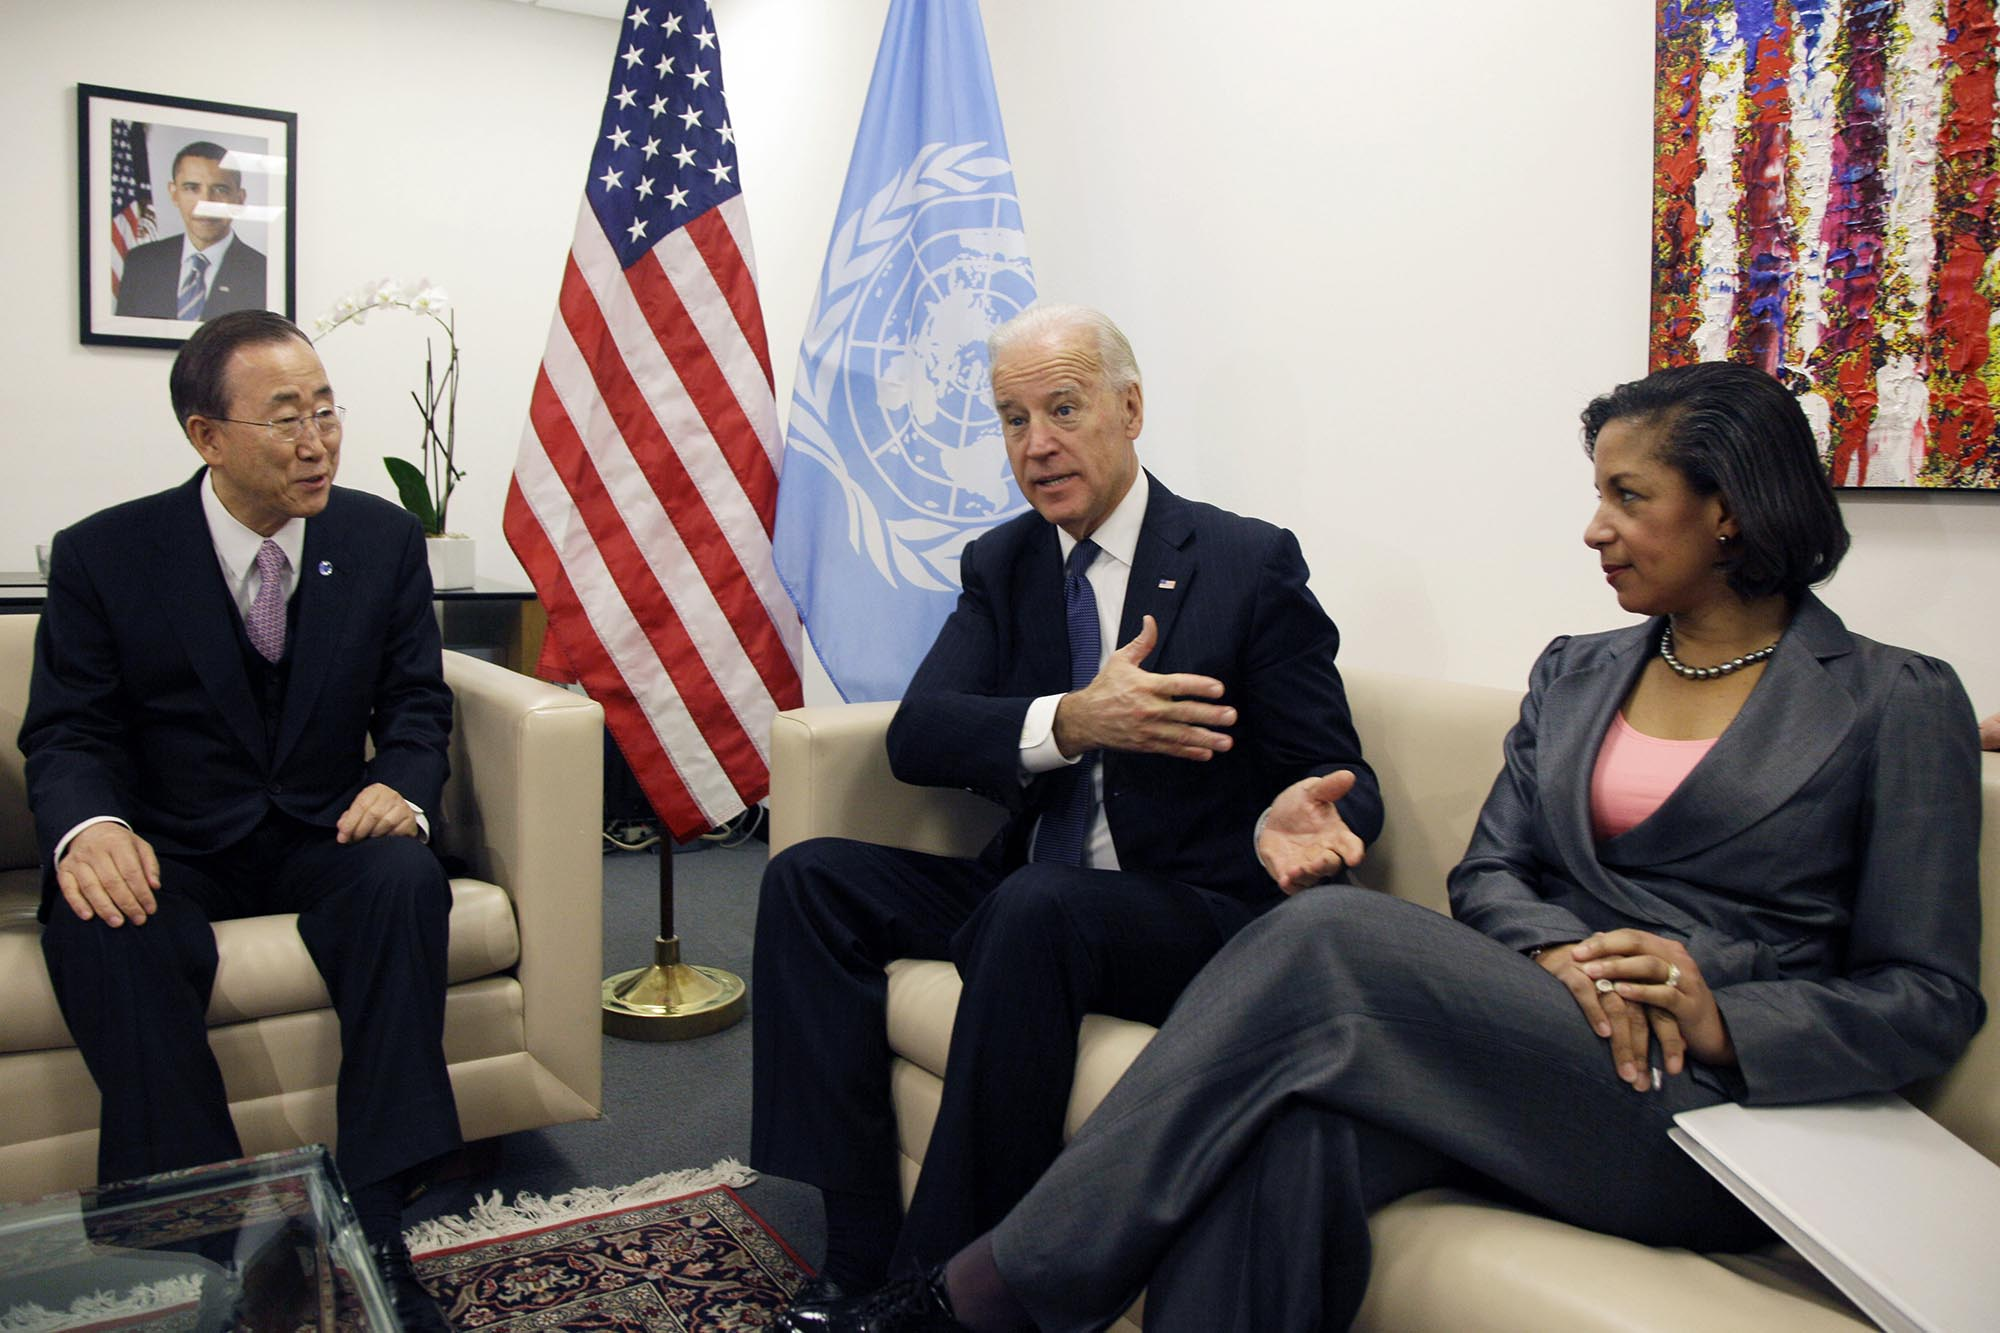 By tapping Susan Rice, Biden embraced worst corruption of Obama years